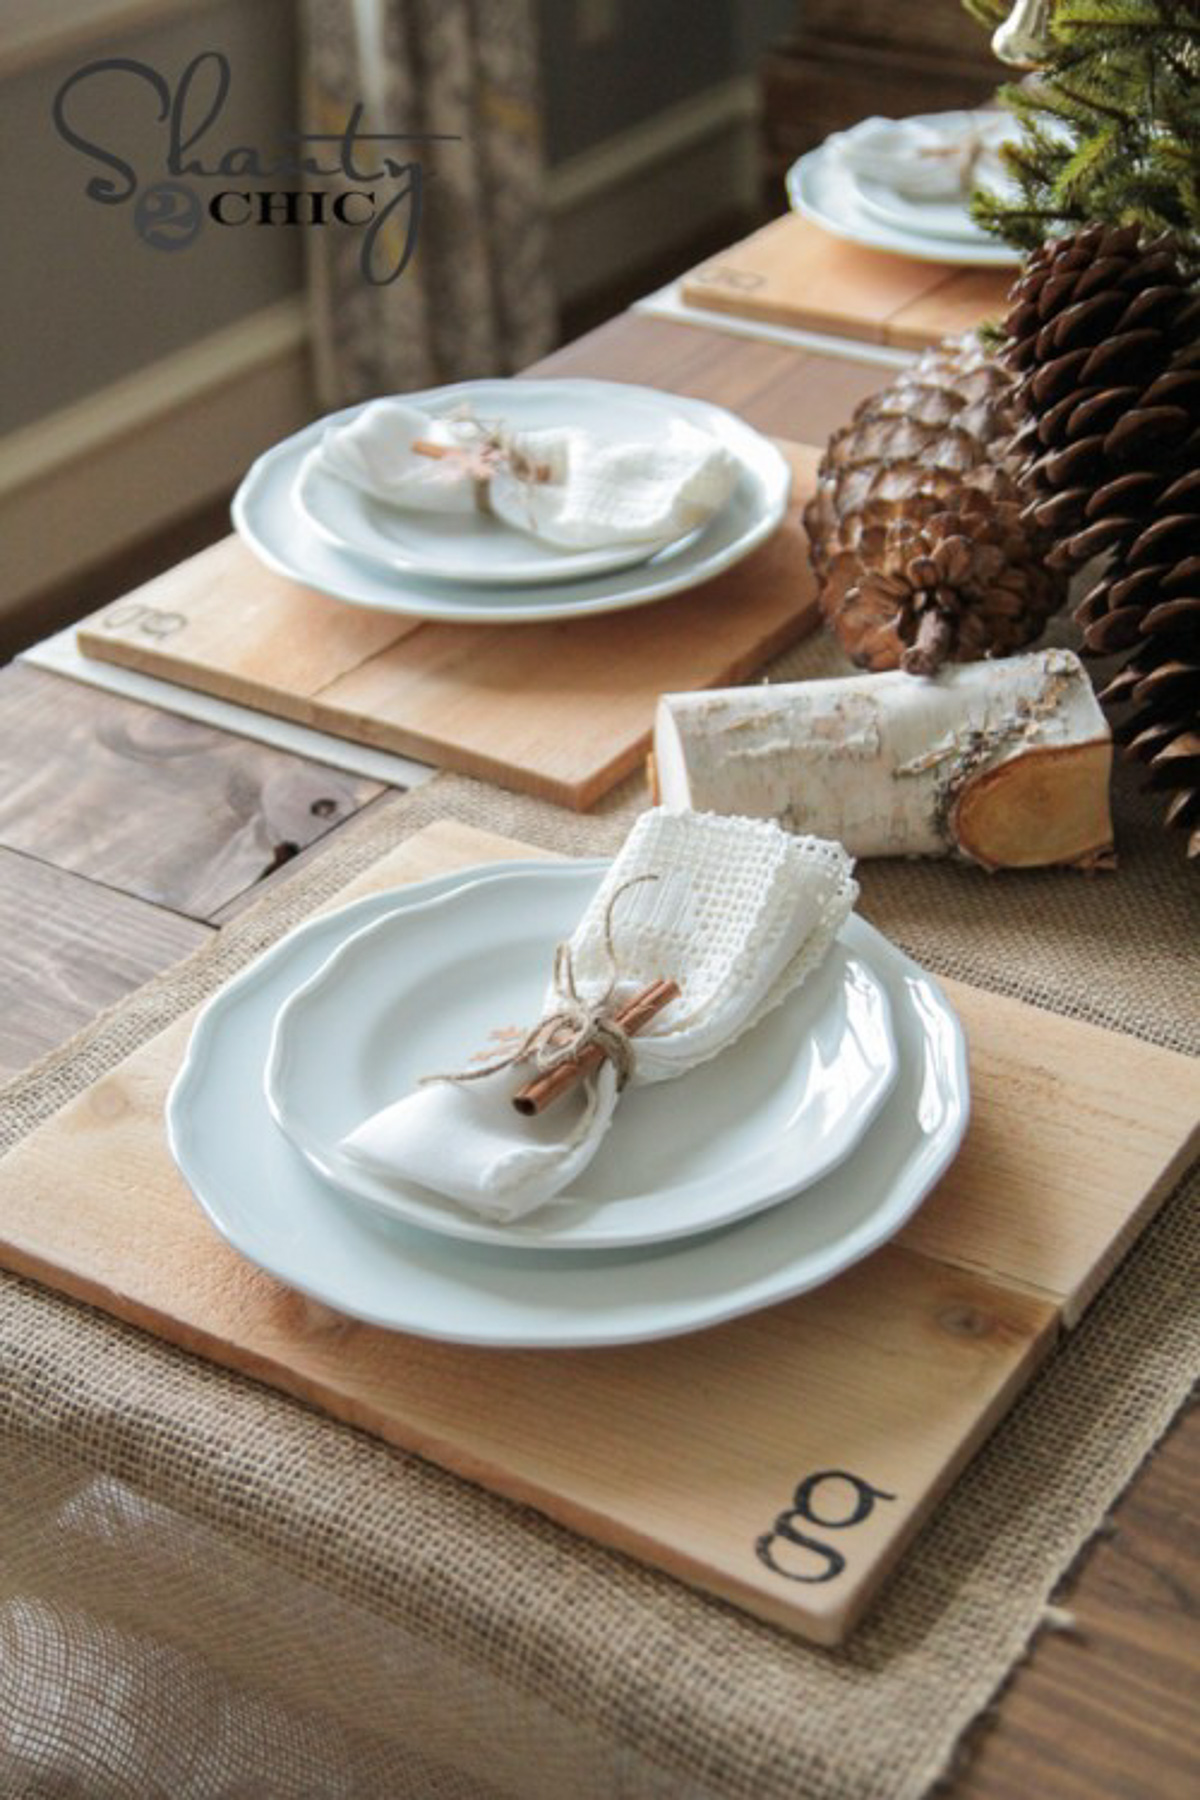 transform your tablescape with these 20 festive settings - page 2 of 2